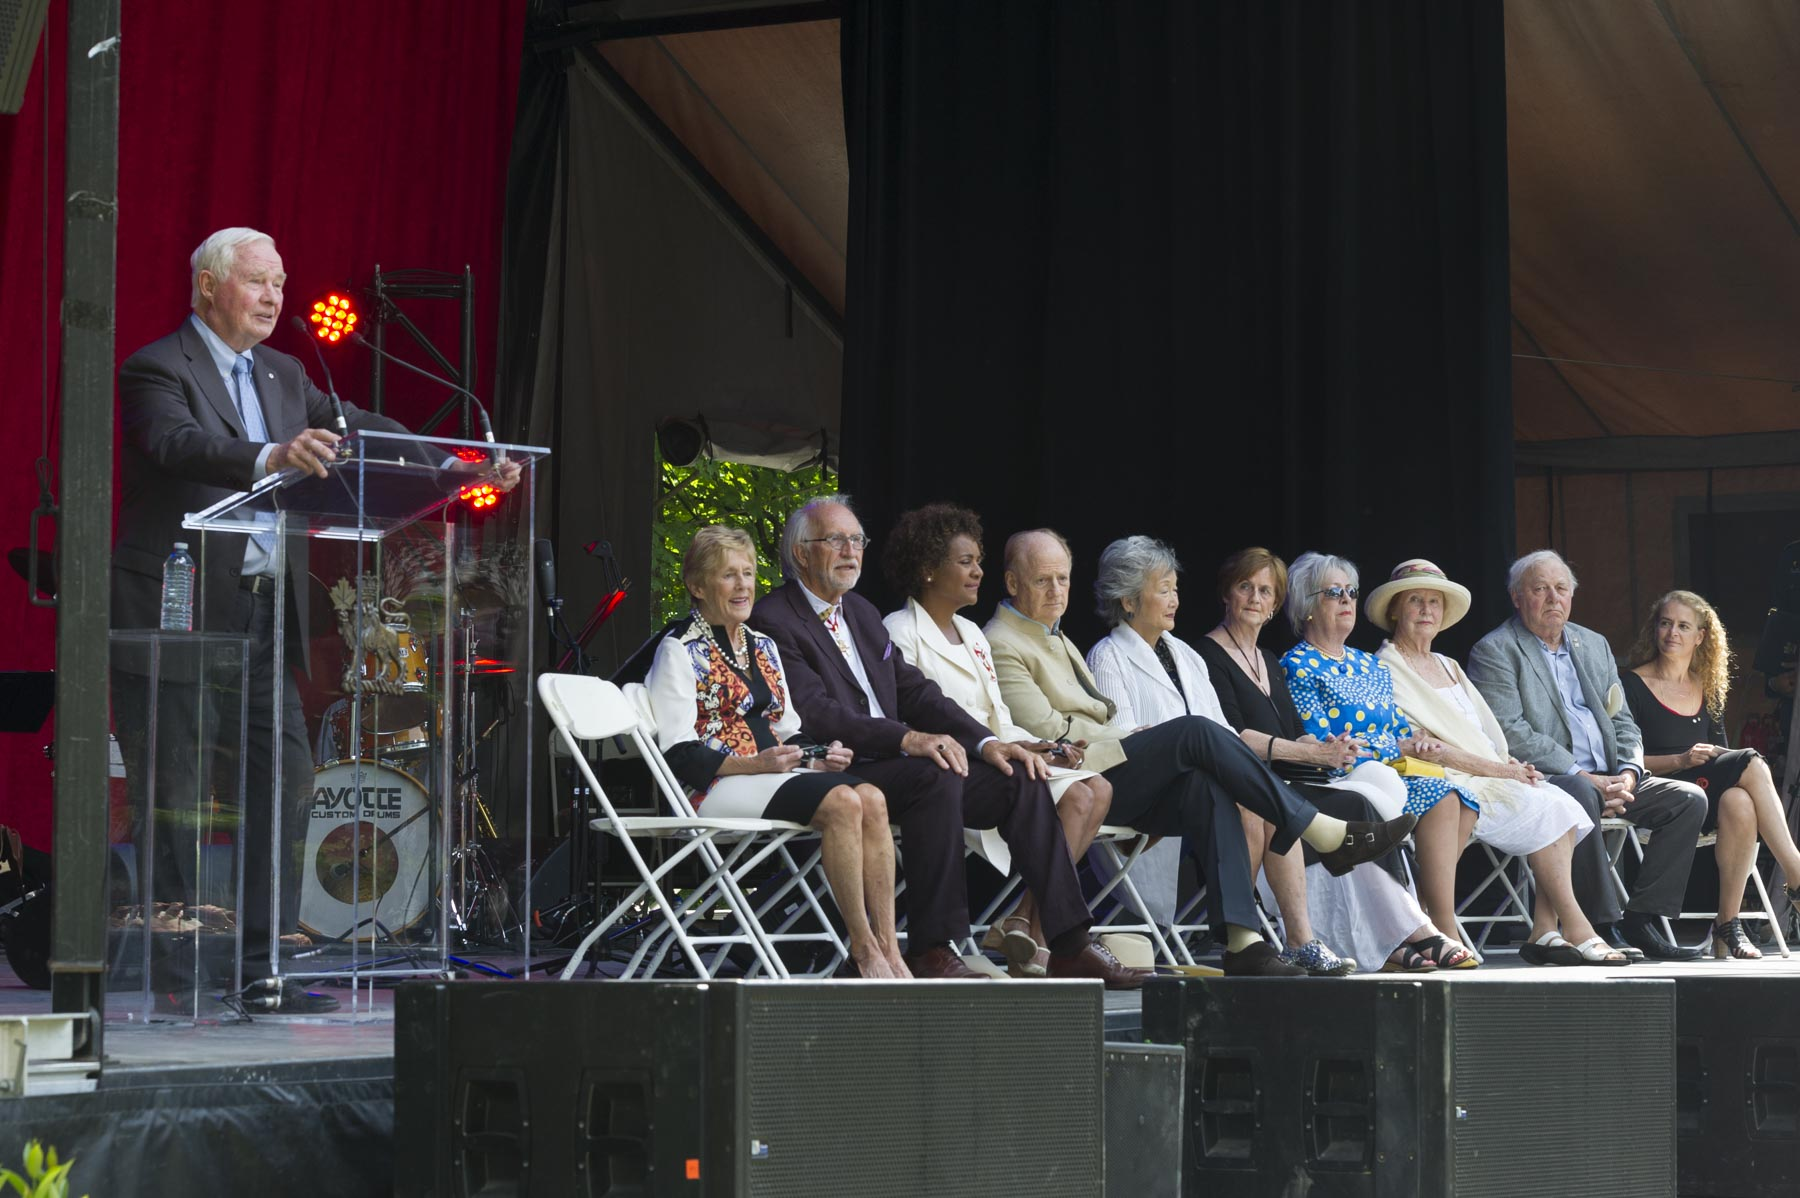 Their Excellencies hosted a special gathering to mark the 50th anniversary of the Order of Canada at Rideau Hall. Their predecessors joined them on stage, in addition to Ms. Julie Payette, Governor General Designate.